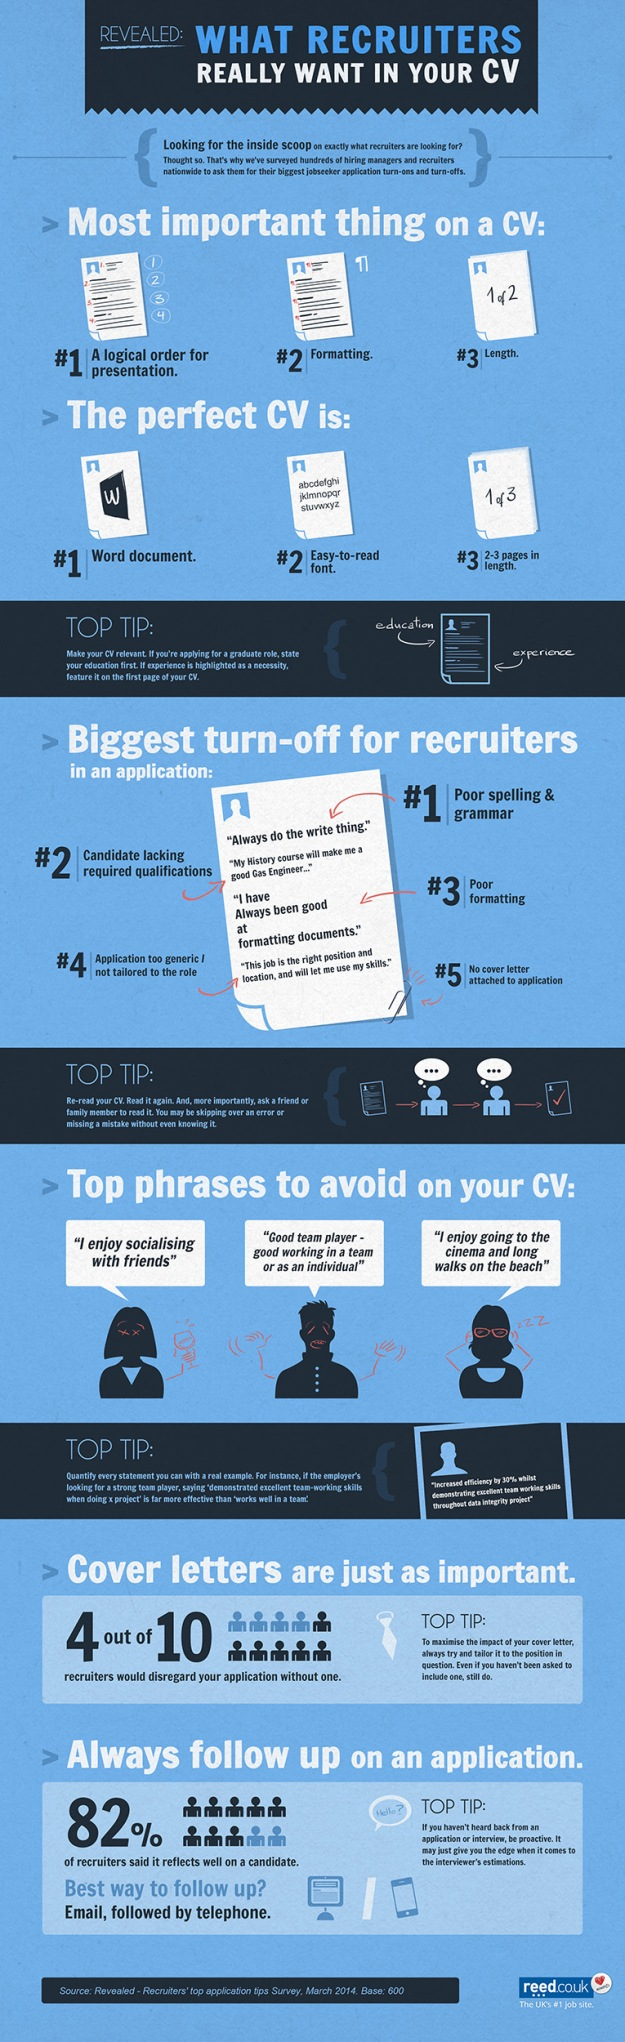 revealed-what-recruiters-really-want-in-your-cv-infographic